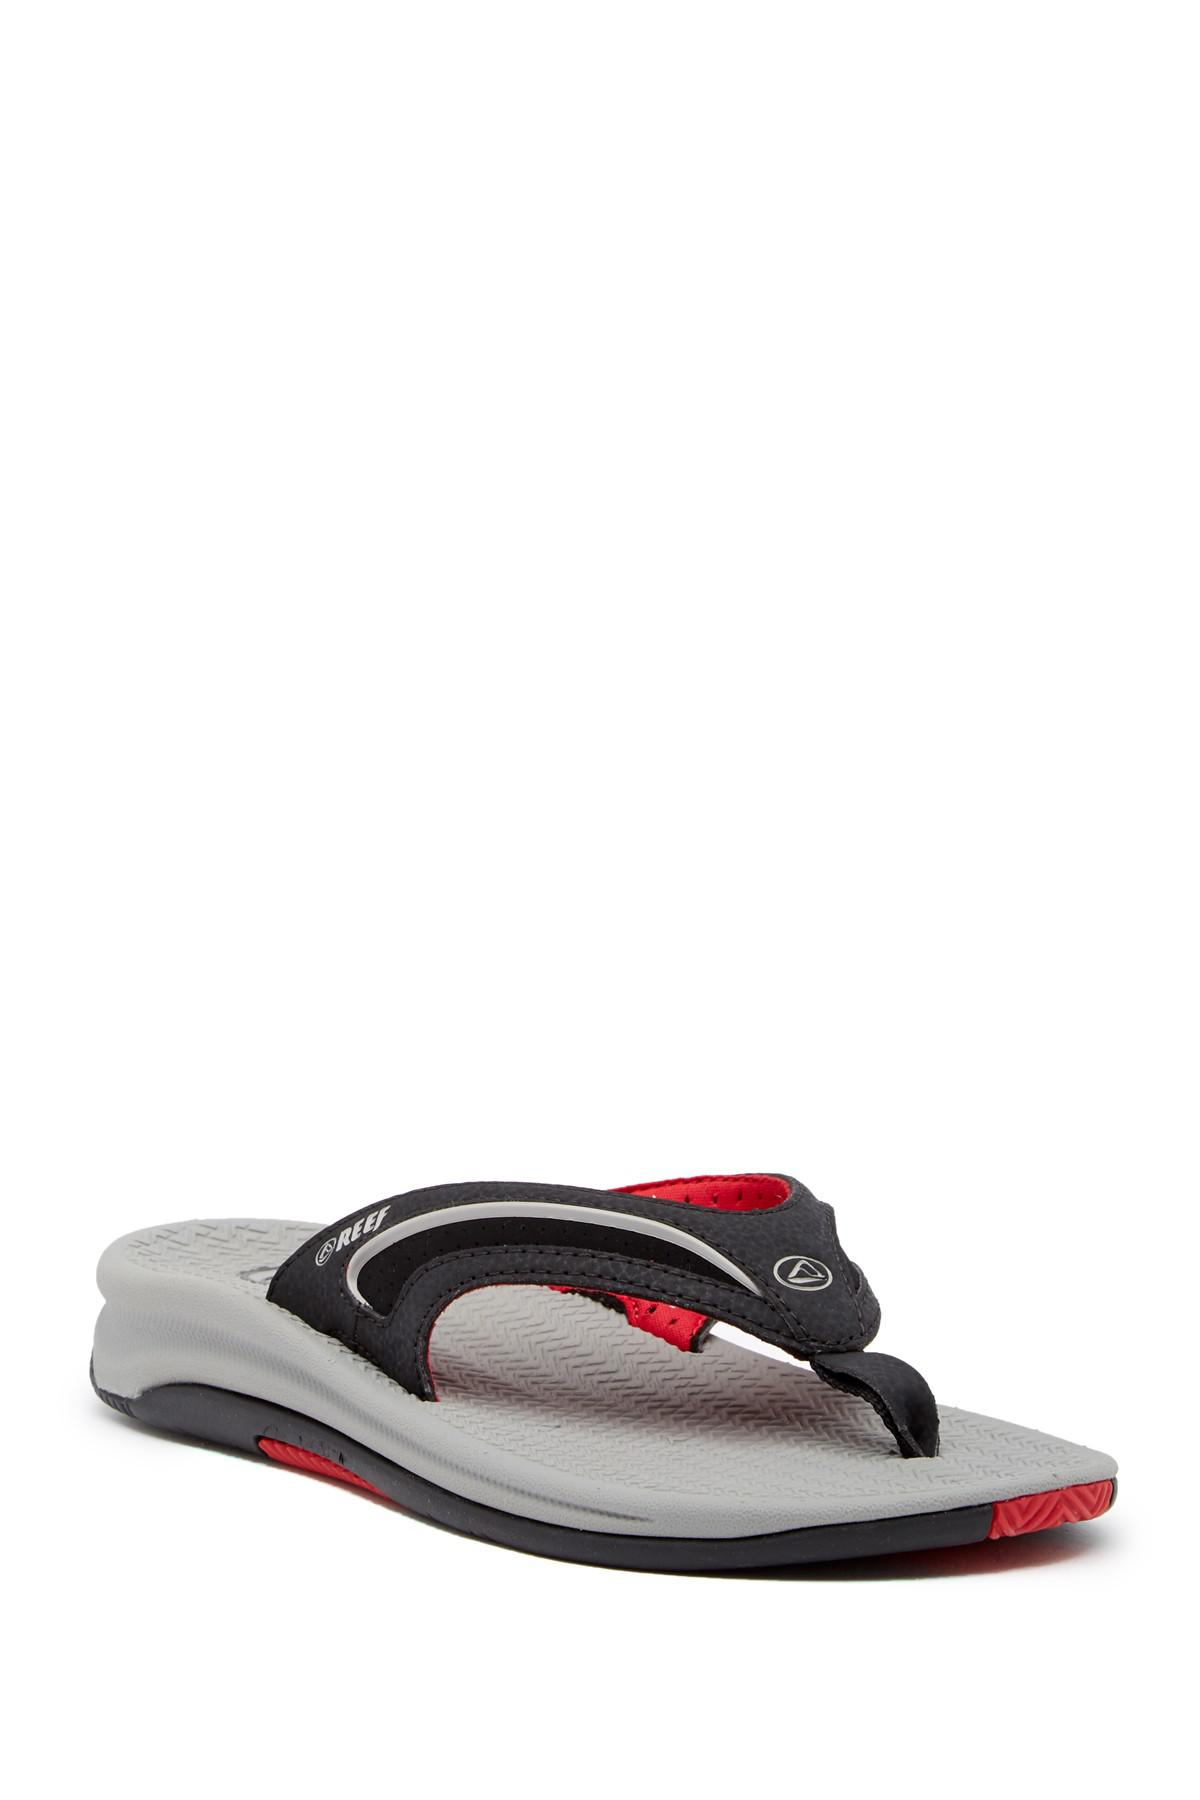 debfe1f9909 Lyst - Reef Flex Flip Flop (men) in Red for Men